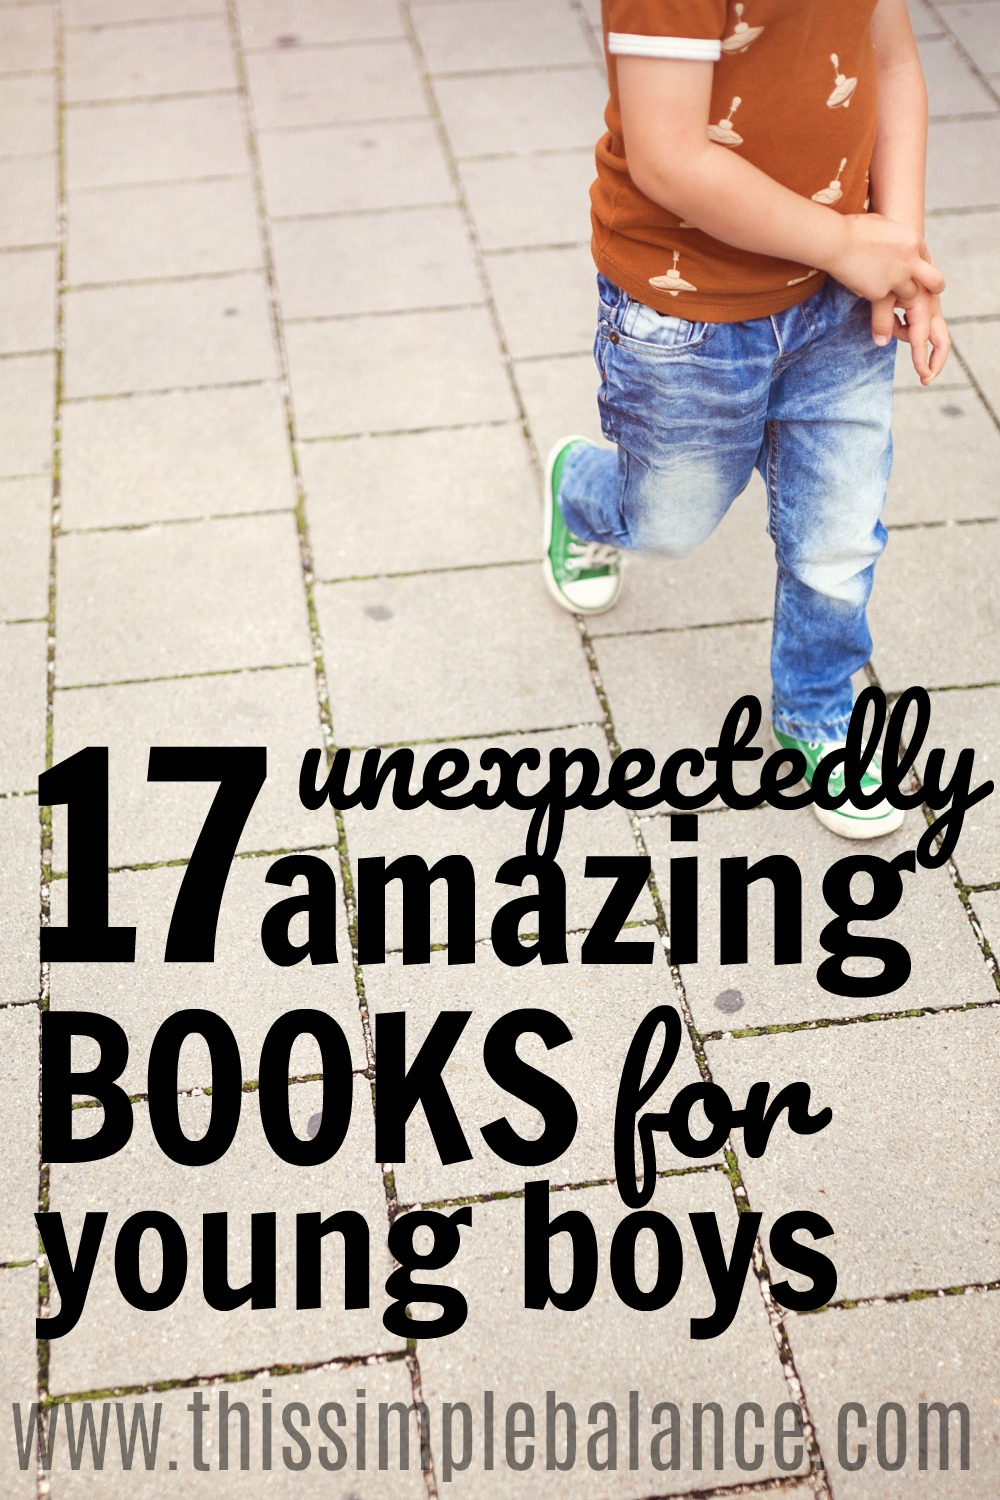 Best Books for Young Boys: I have so much trouble finding good books for my son, ones he loves. This list is so helpful - actual favorite books from a five year old boy. Perfect! Off to book holds from the library!